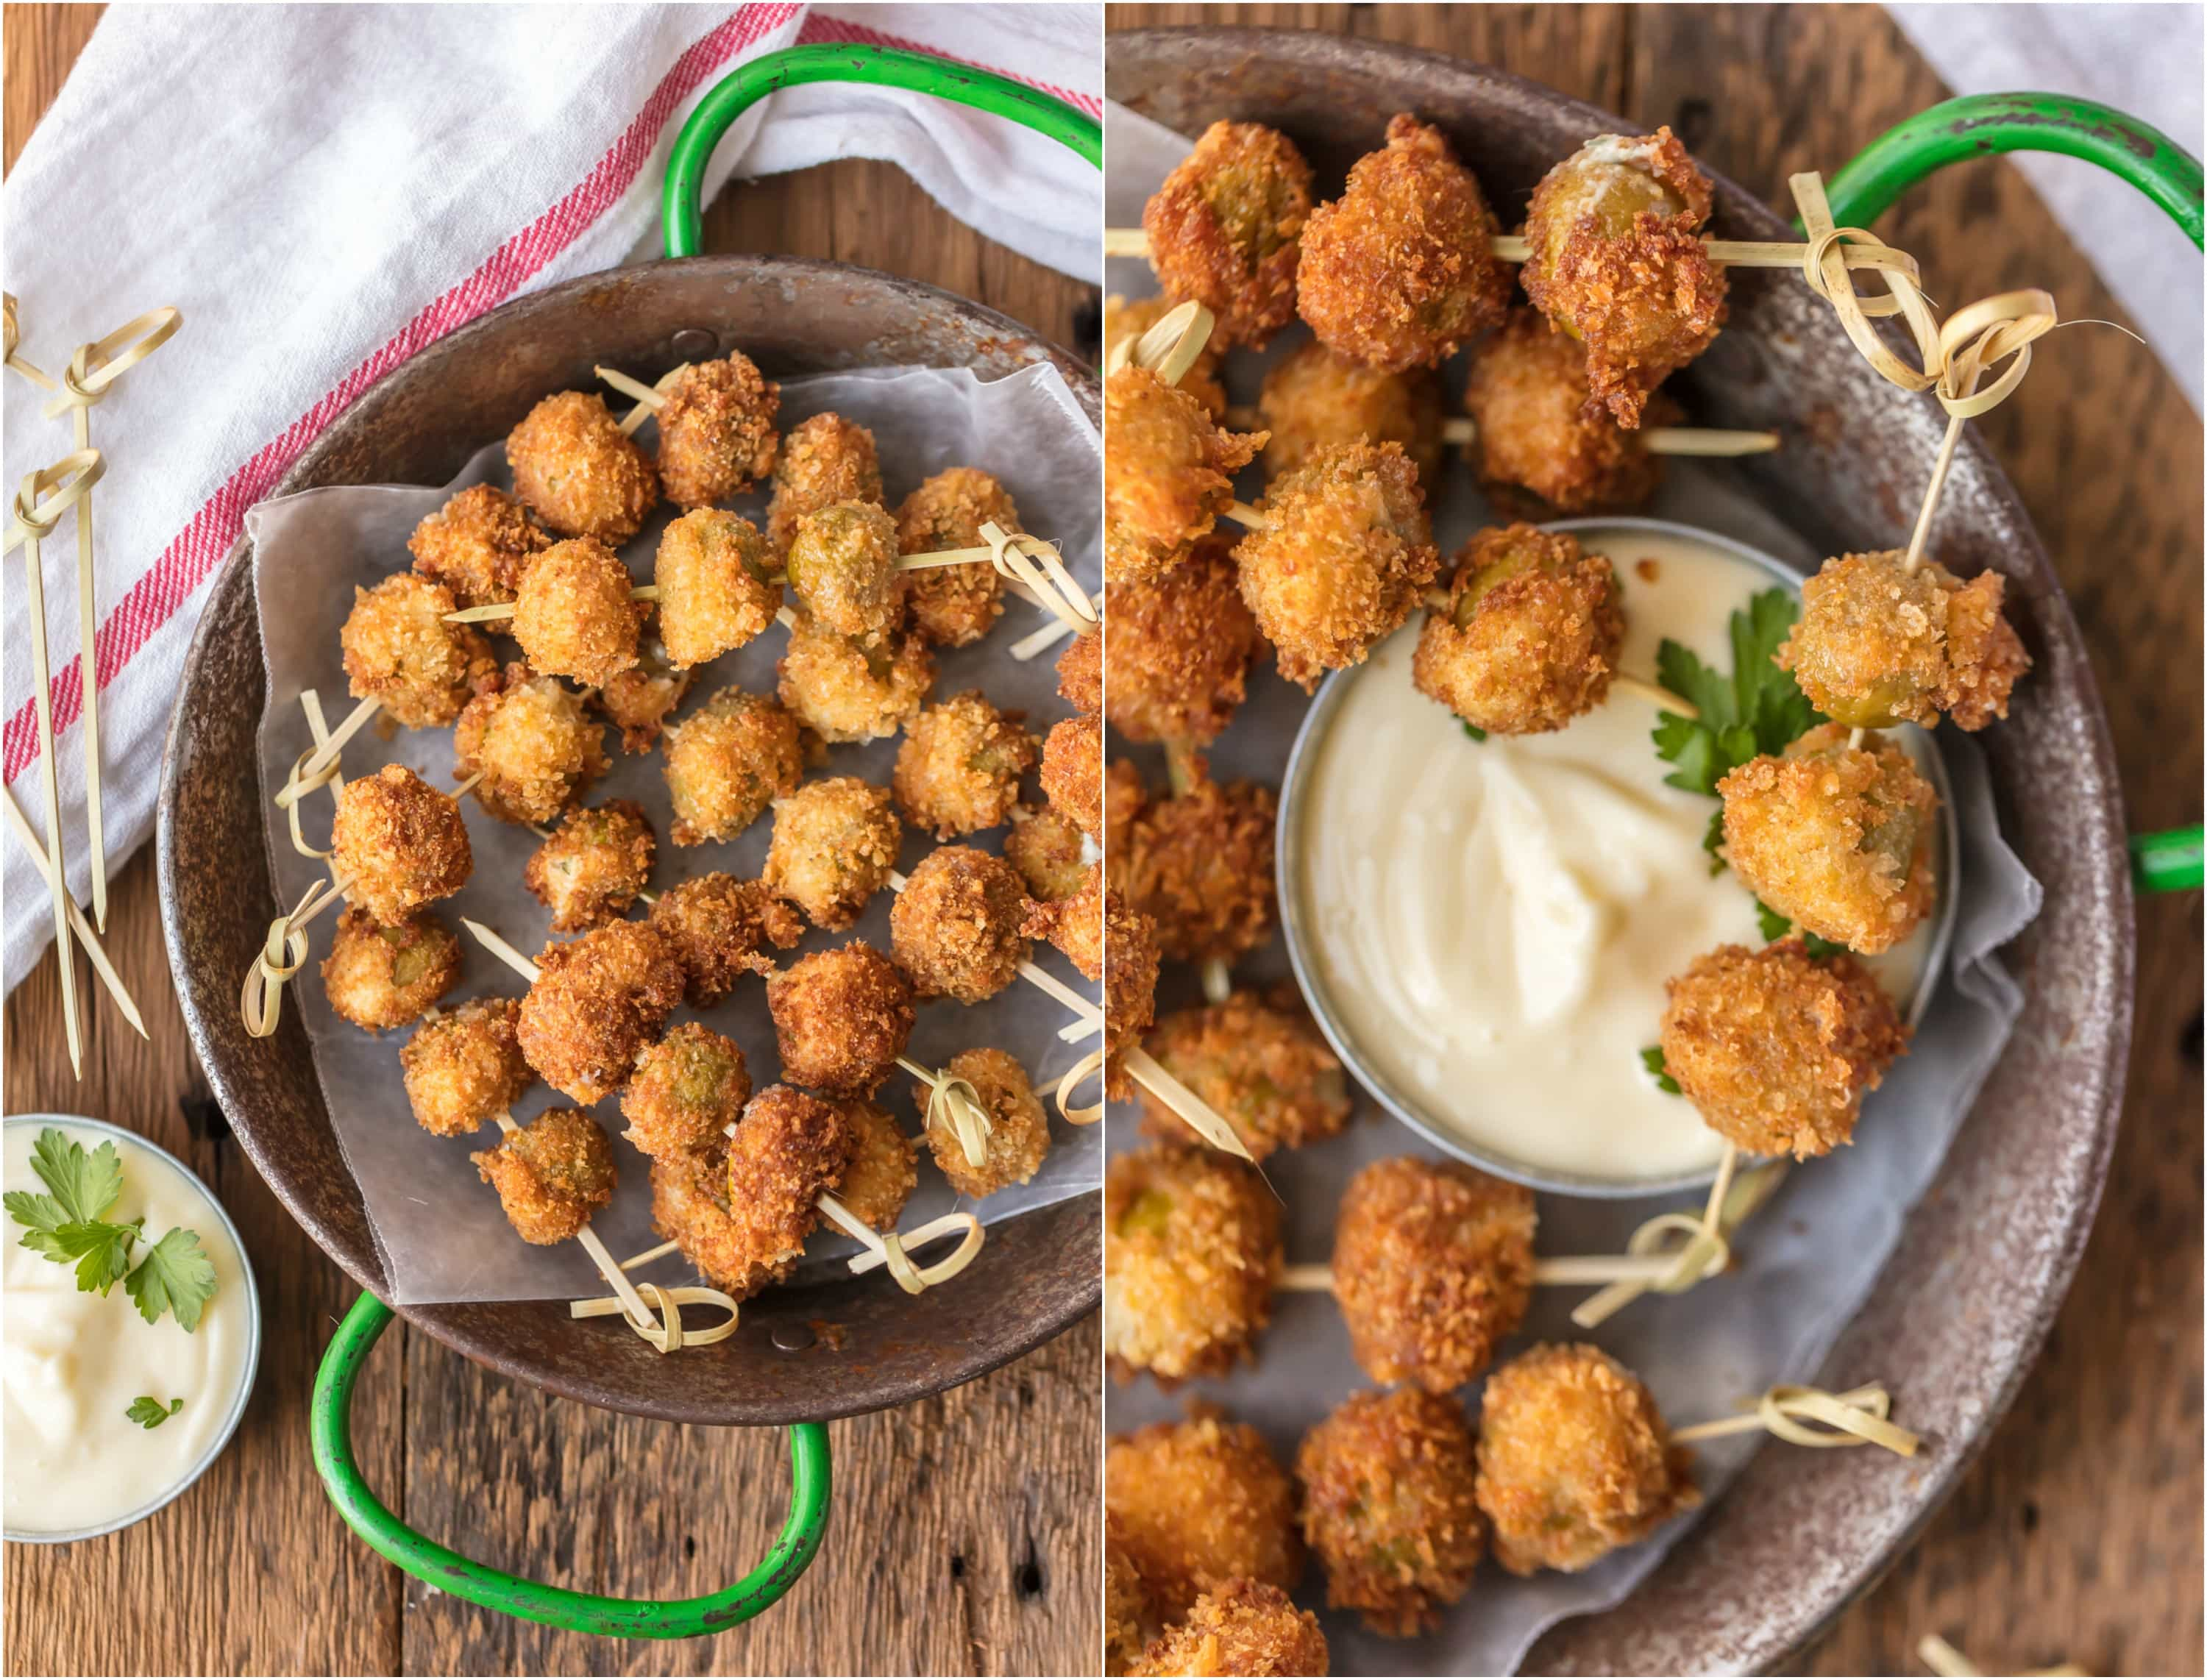 These FRIED BLUE CHEESE STUFFED OLIVES with a simple garlic aioli are absolutely addicting! Such a simple and perfect holiday appetizer, just what you need for Christmas or New Years Eve!